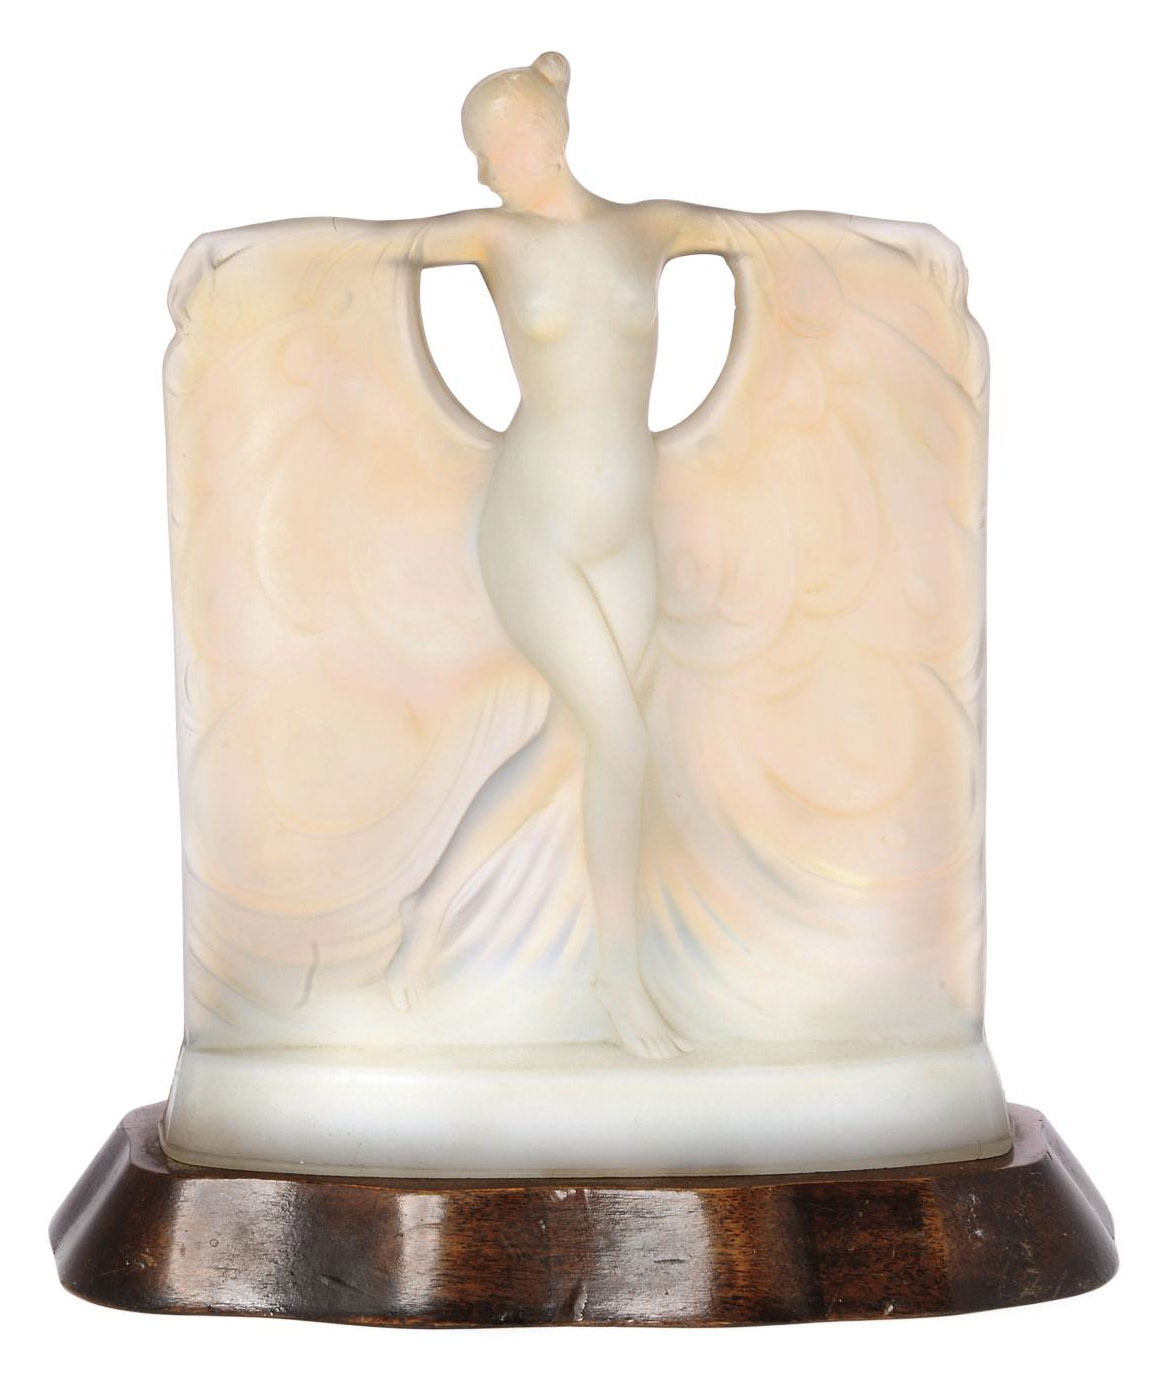 A SABINO SUZANNE OPALESCENT GLASS FIGURE MOUNTED WITH LIGHT FITMENT